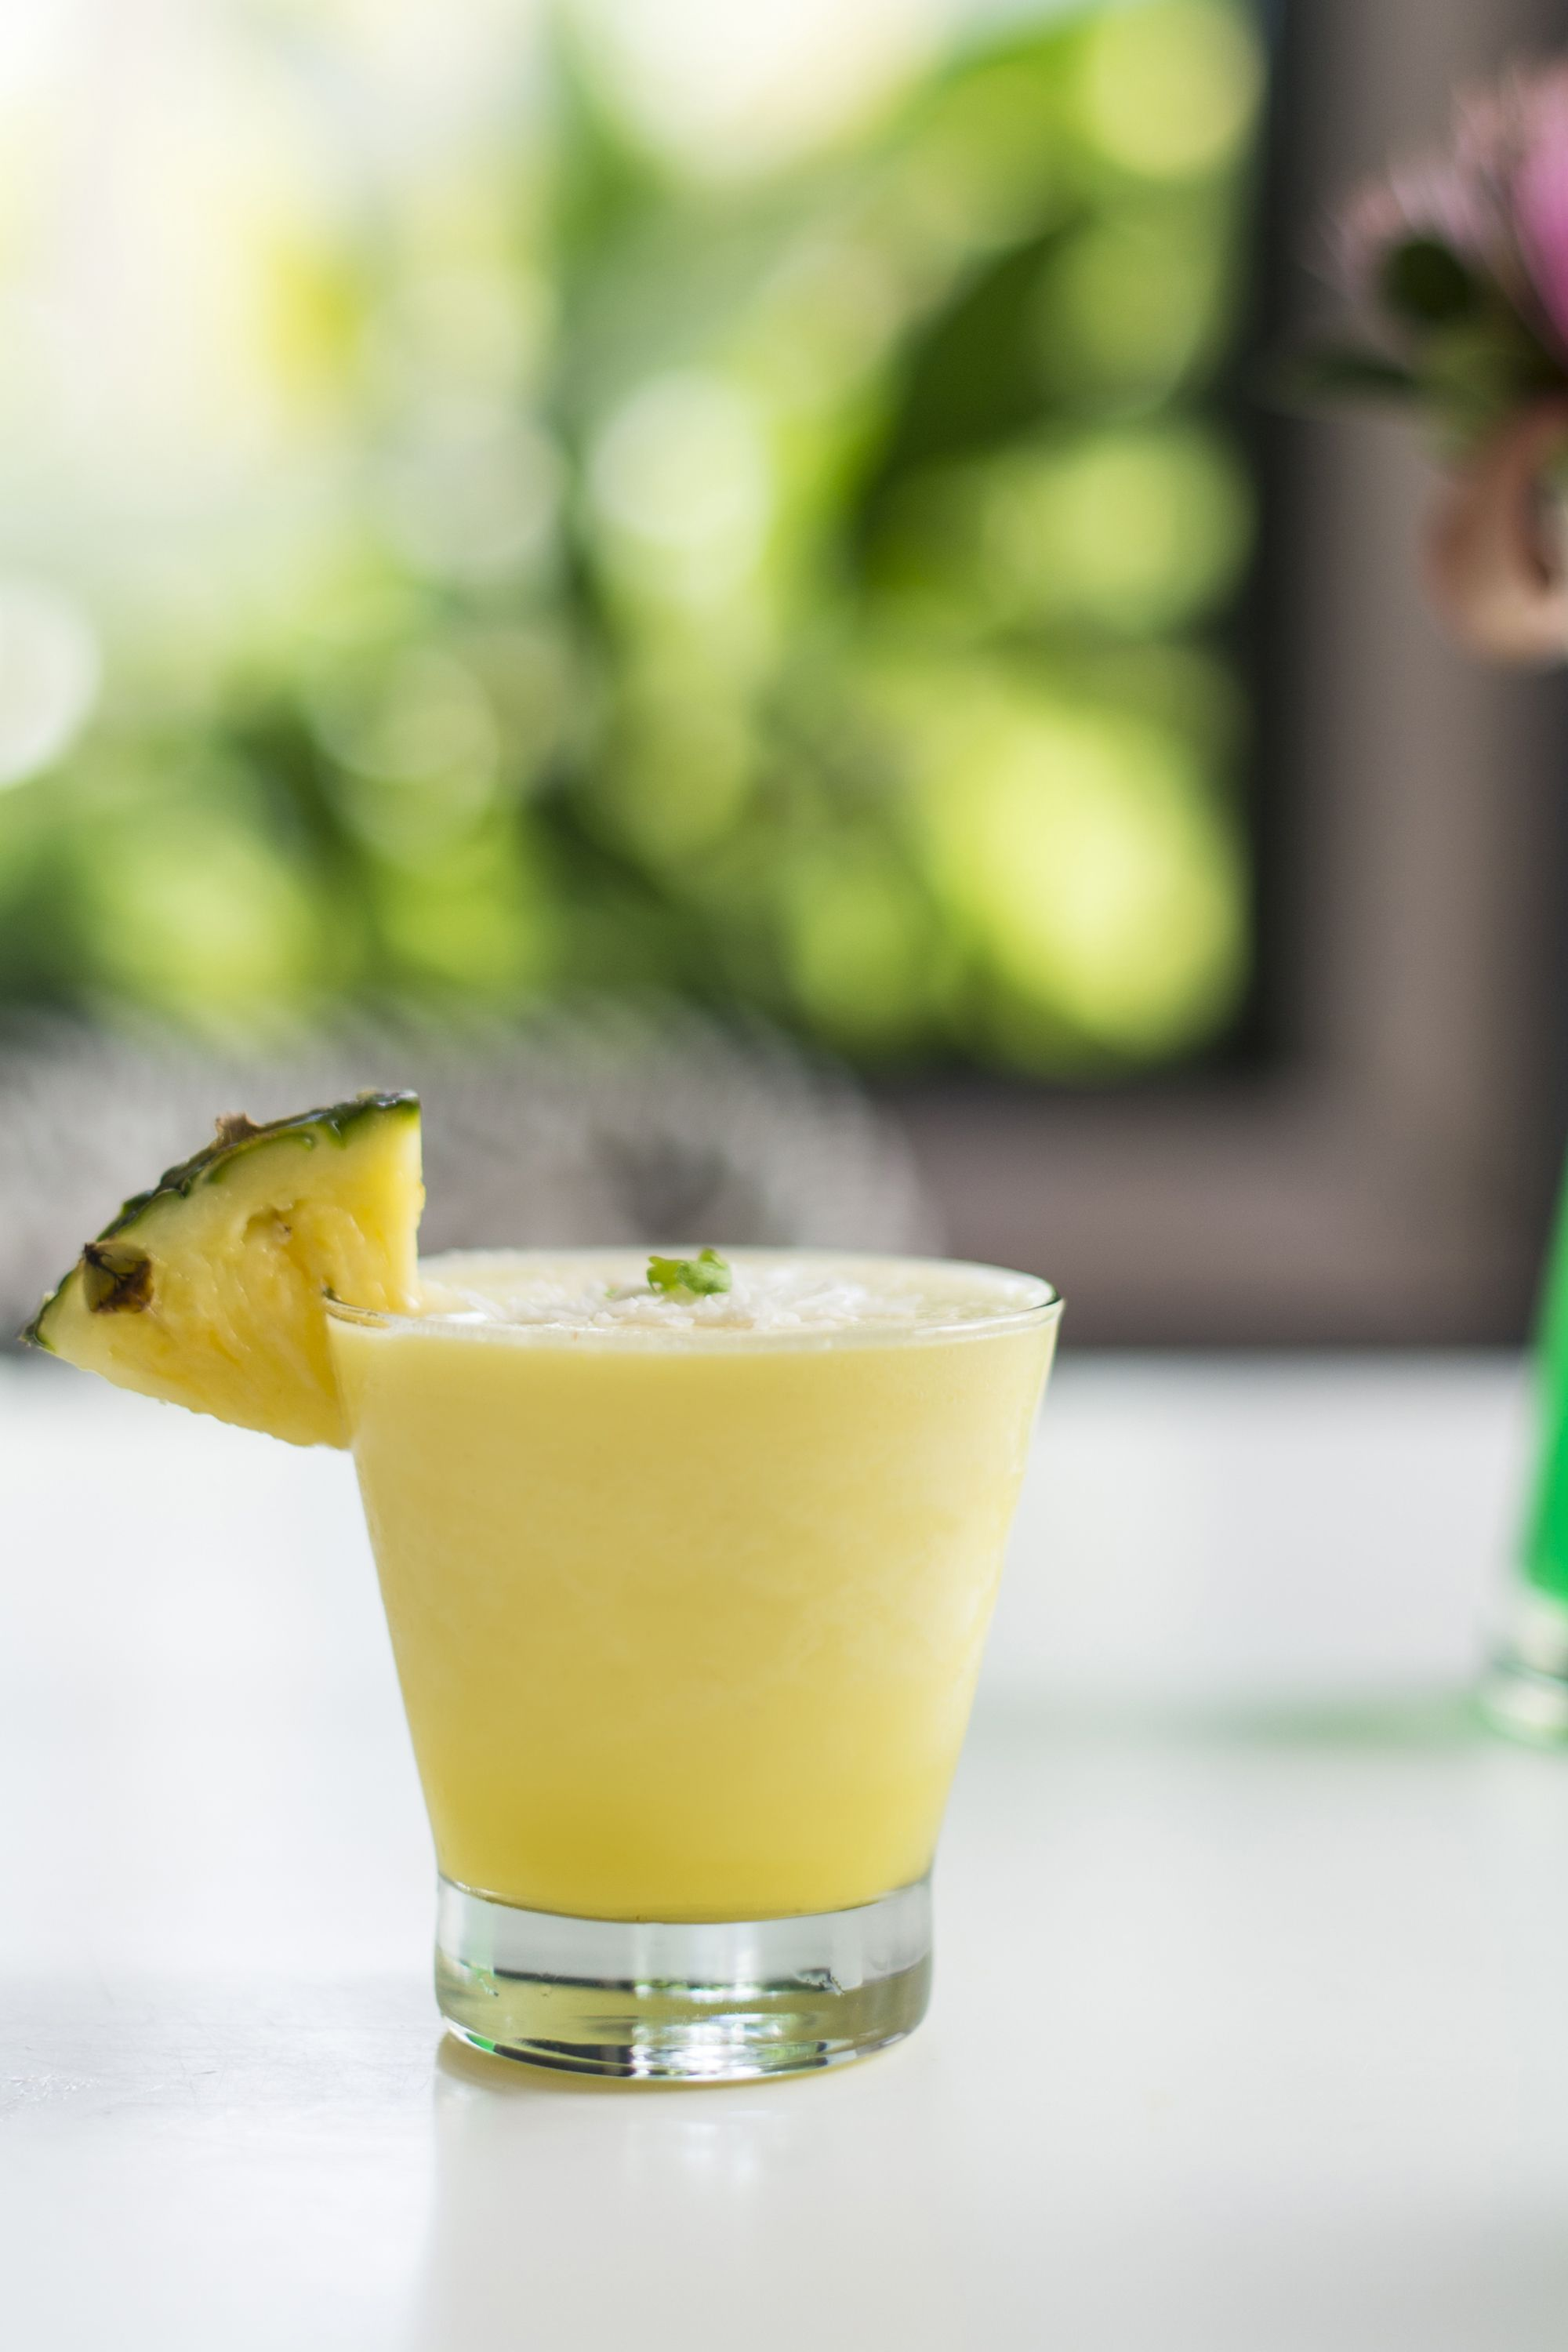 <p>For hydration under the sun, the property's Biekes Detox features agua de coco (coconut water), celery, pineapple, and apple garnished with fresh coconut.</p><p>-</p><p><strong>Recipe for 1 glass—blend together: </strong></p><p>4oz. fresh coconut water</p><p>1 cup of diced pineapple</p><p>½ celery</p><p>½ green apple</p><p>Blend and garnish with fresh coconut shavings.</p><p>-</p><p><strong>To spike, add 1 ½ oz pineapple vodka or rum. </strong></p>